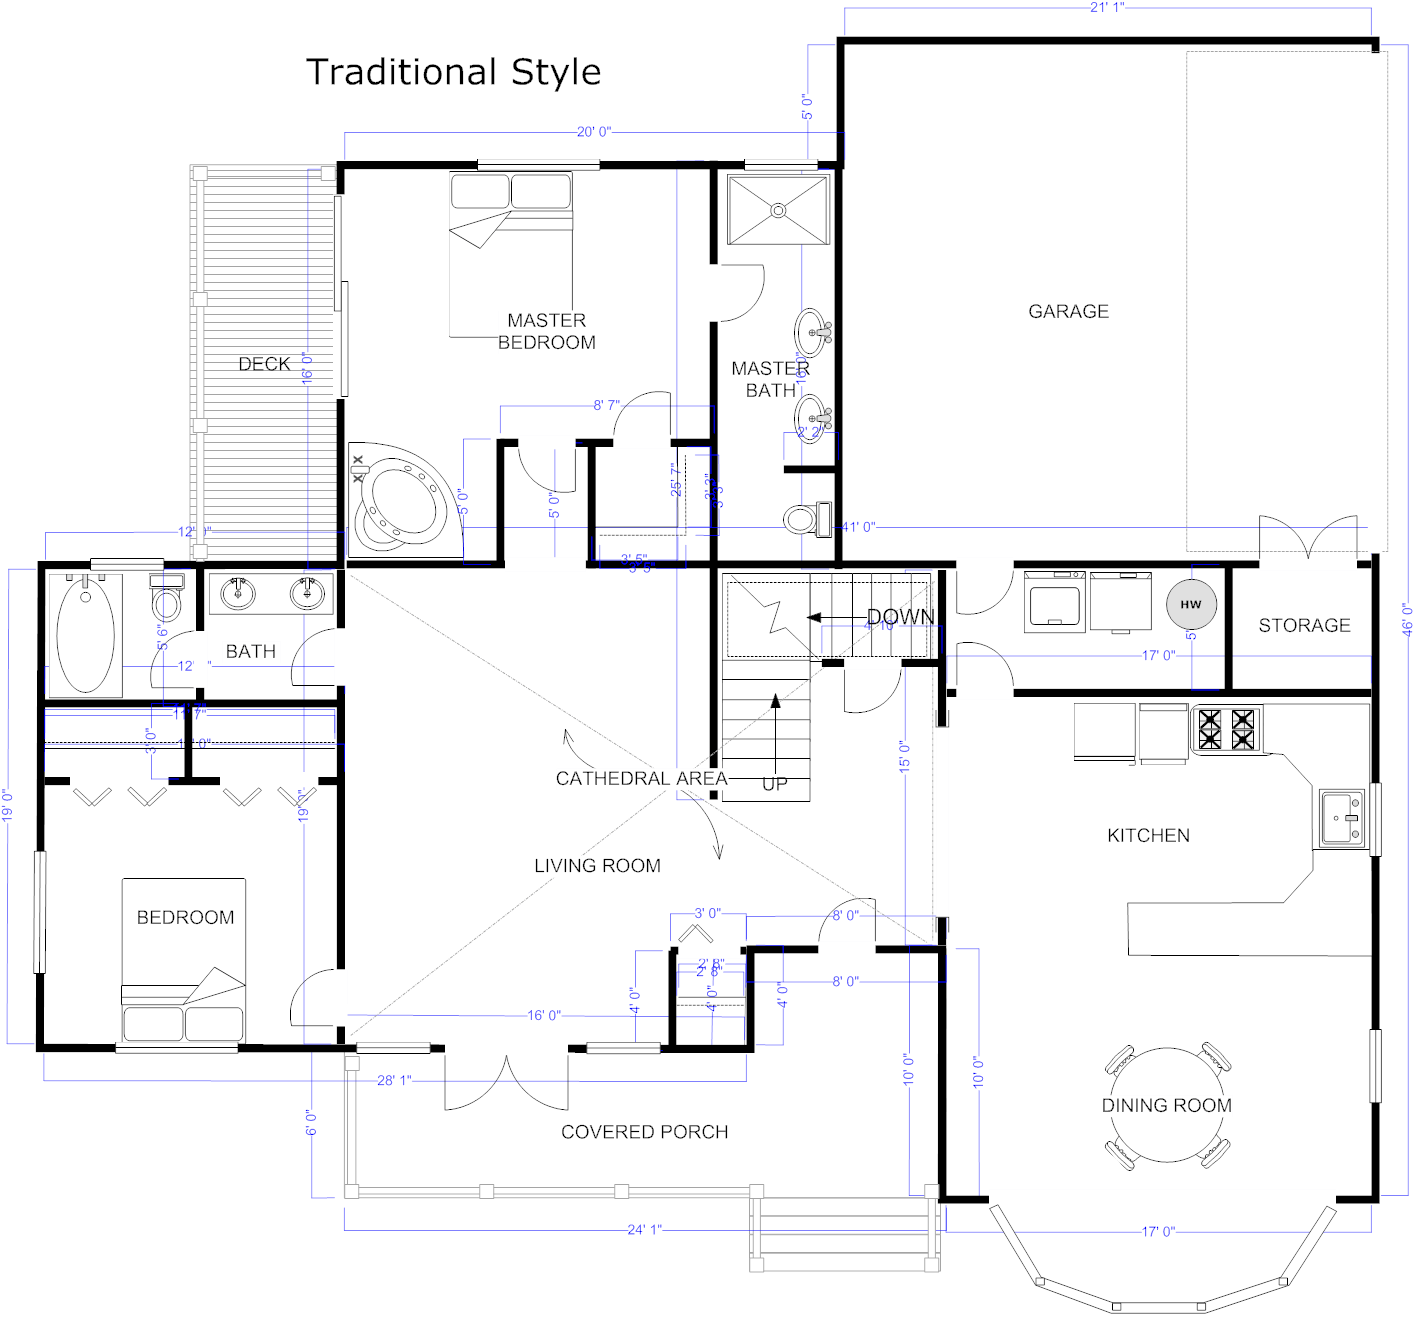 Floor plan maker draw floor plans with floor plan templates Building blueprint maker free